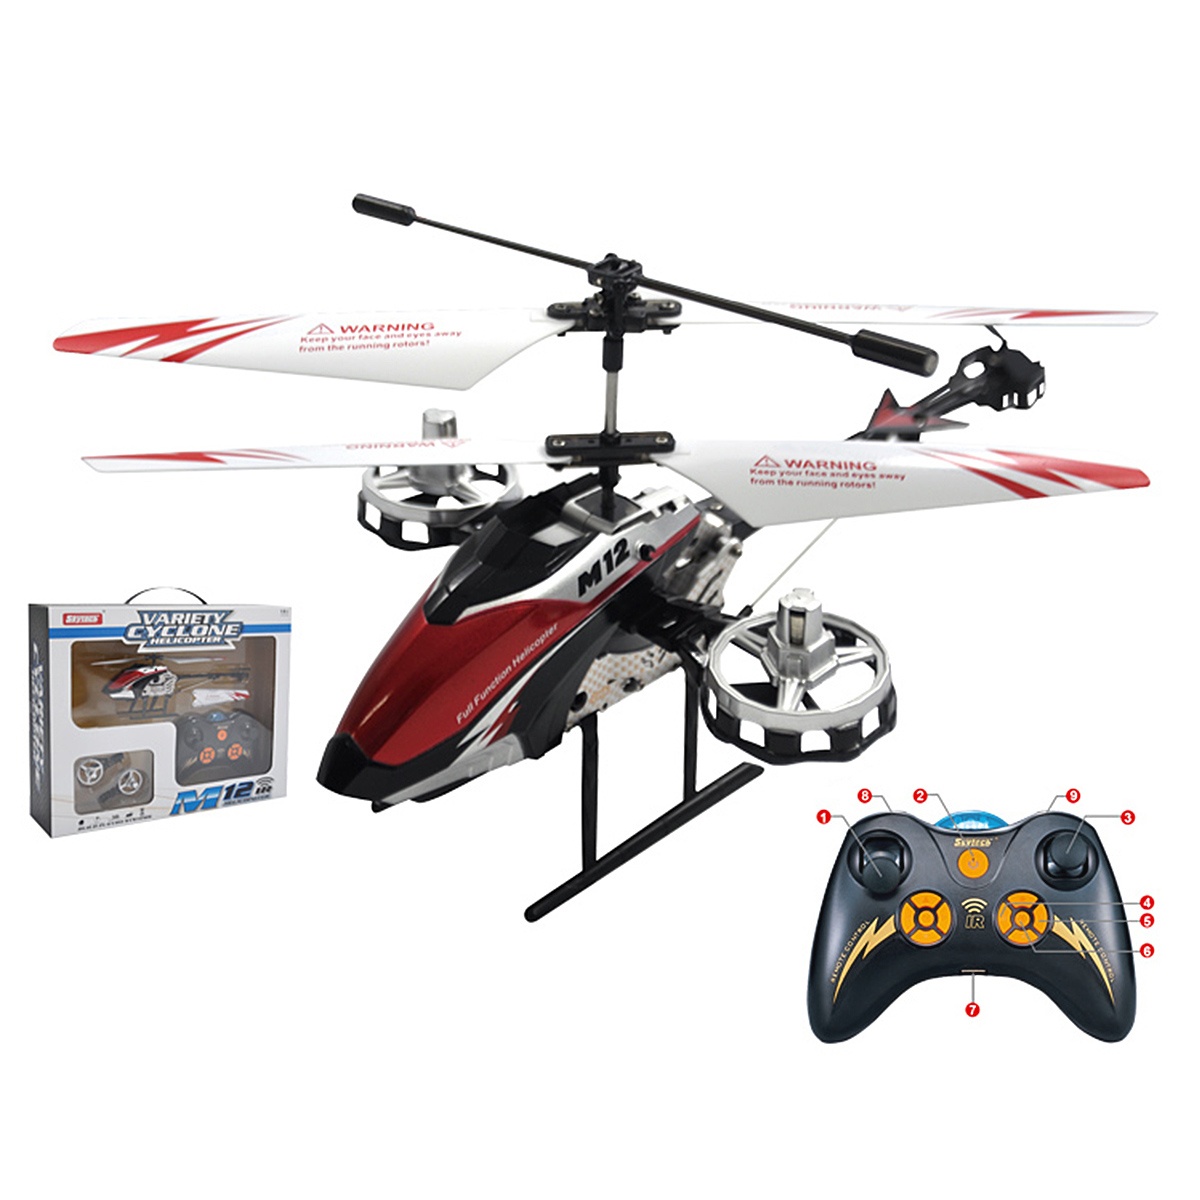 Skytech 4.5 CH M12 Infrared RC Helicopter Shoot Bubbles with Gyro